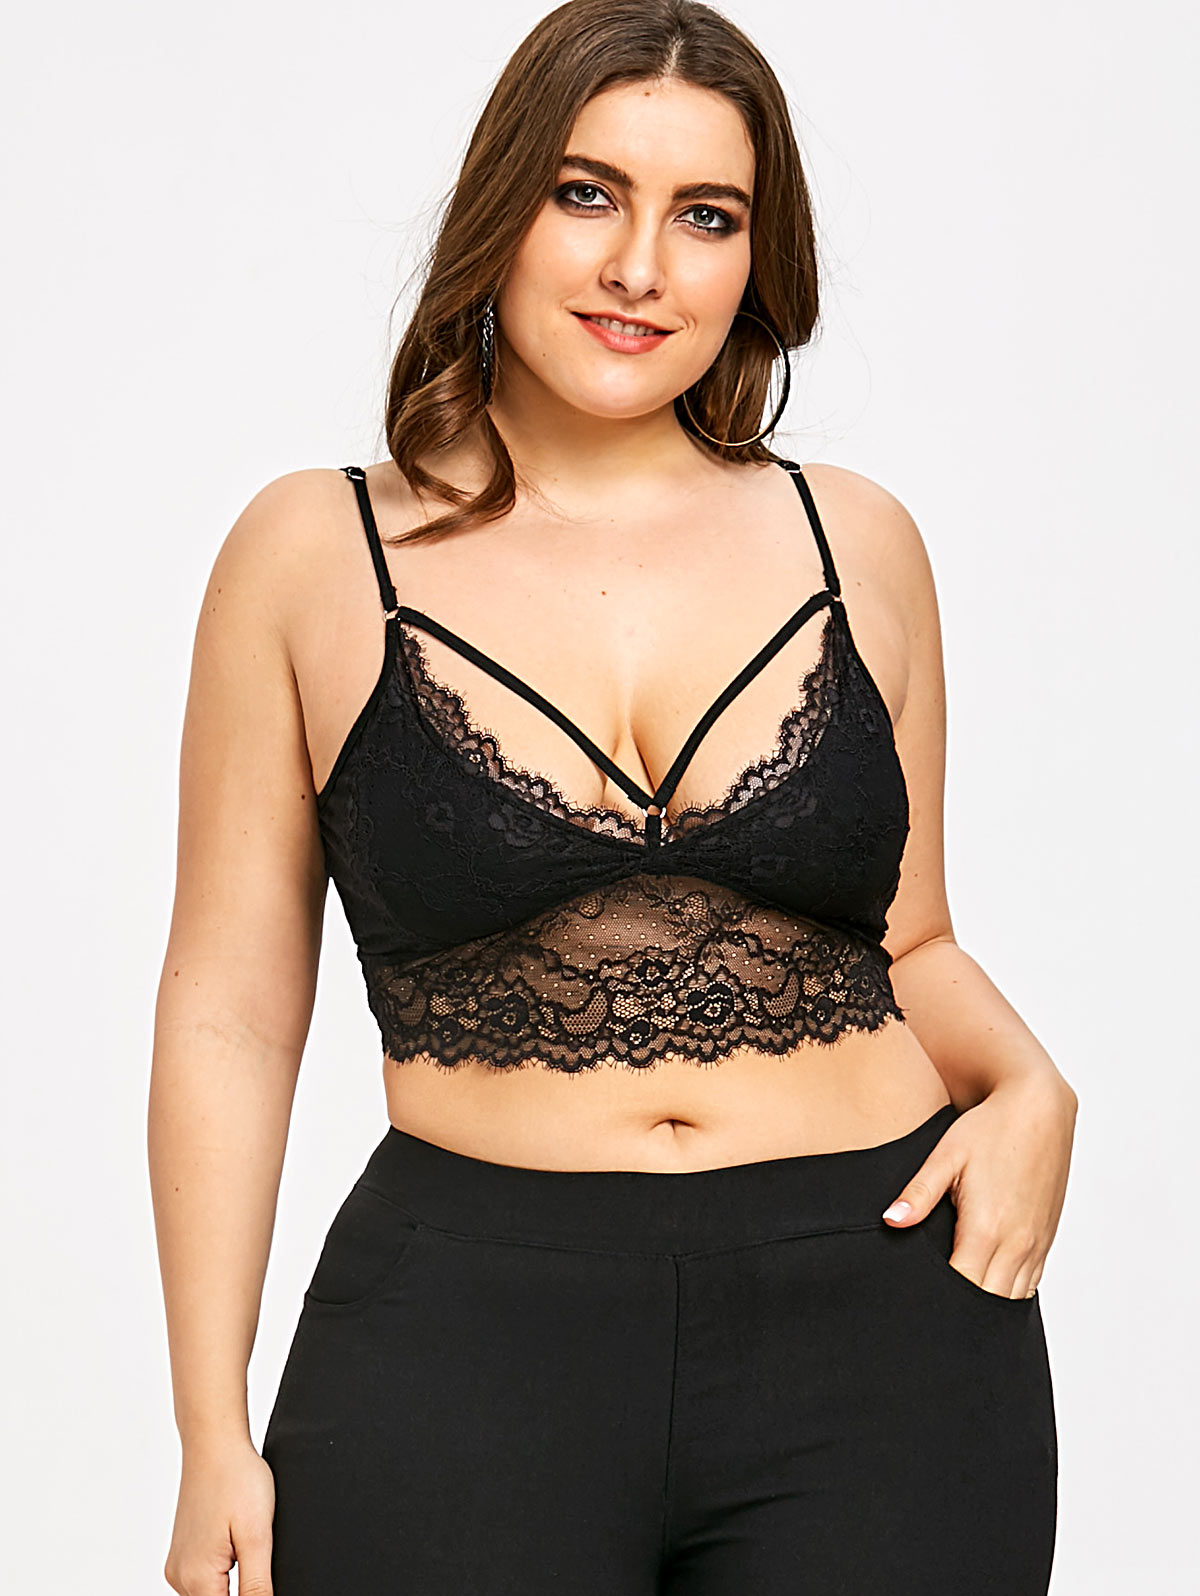 54874c2727dda Gamiss Plus Size 5XL Black Lace Trim Strappy Crop Top Camisole Sexy  Bralette Scalloped Edge Sheer Camisole Women Summer Top Cami